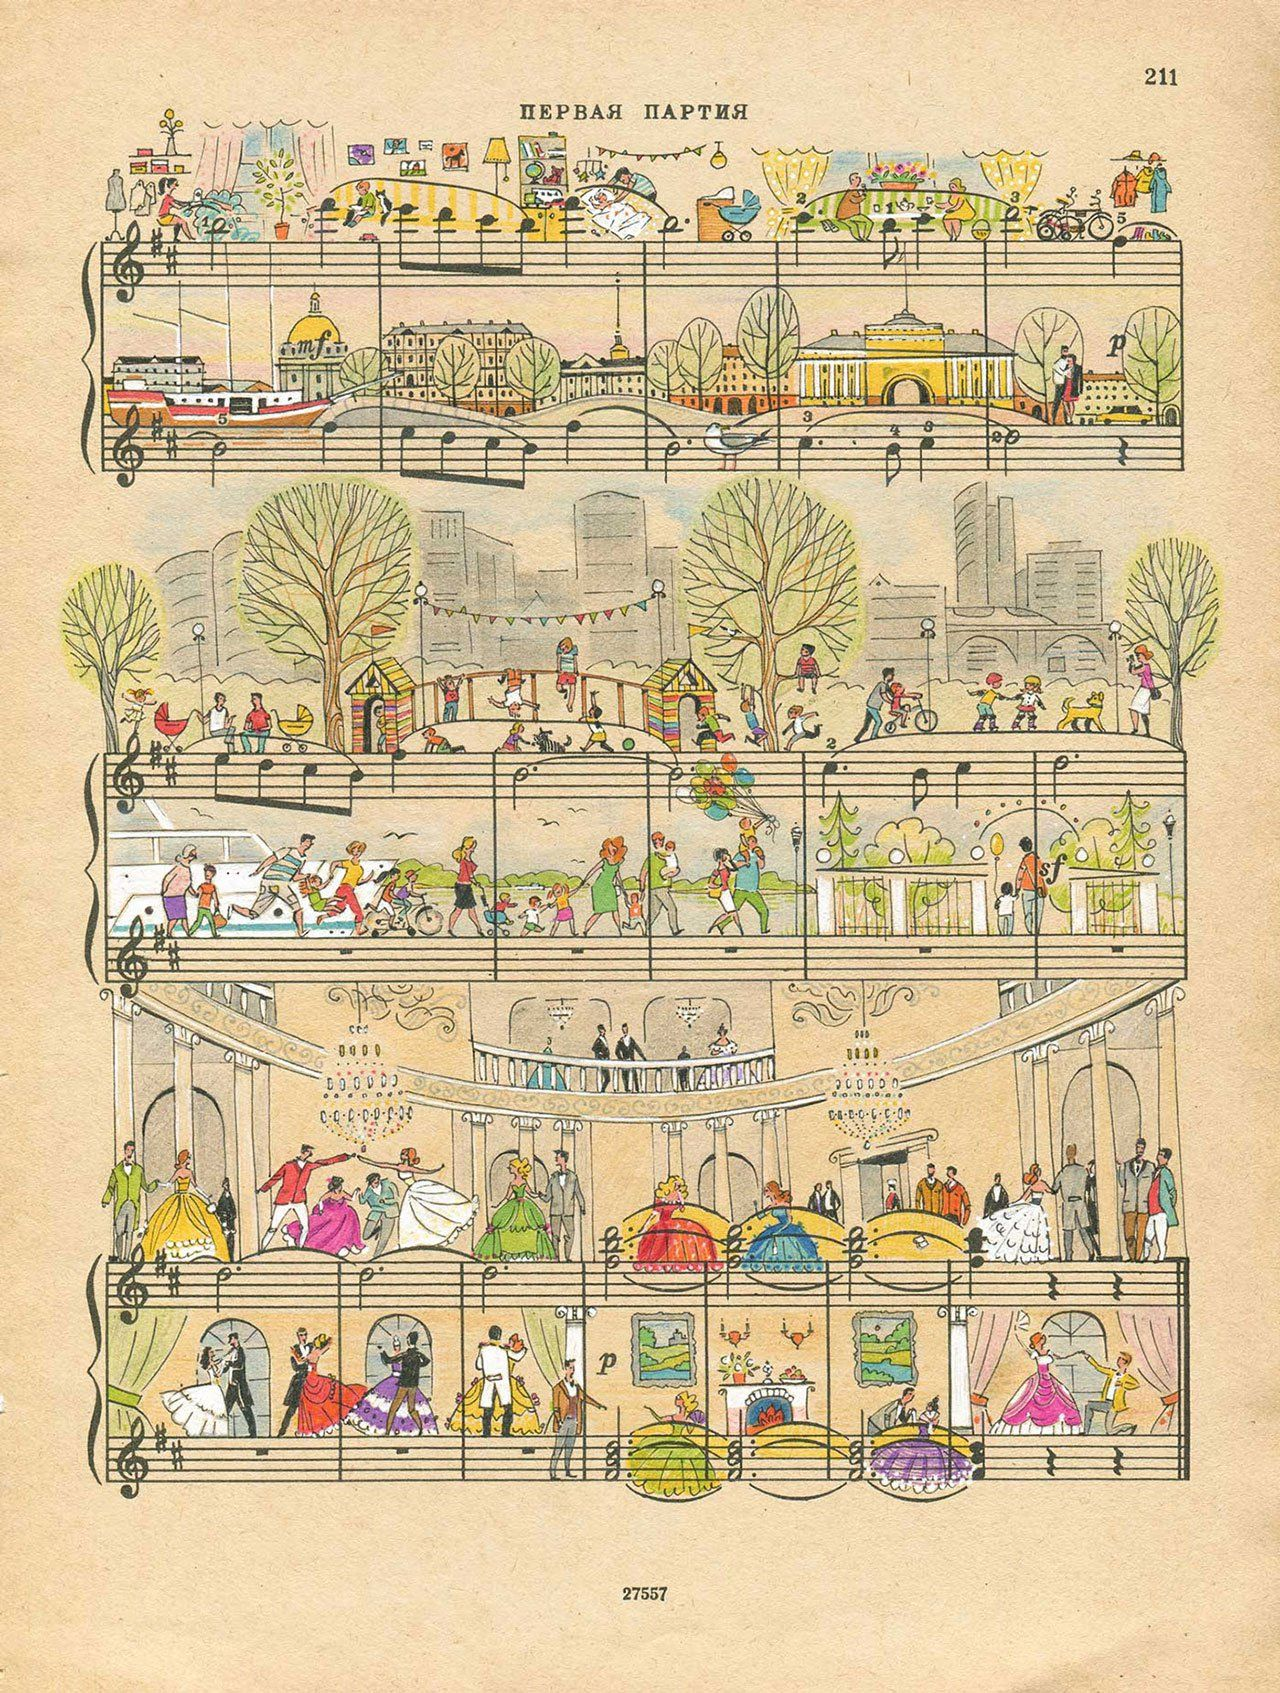 On Note: Miniature Illustrations on Sheet Music by